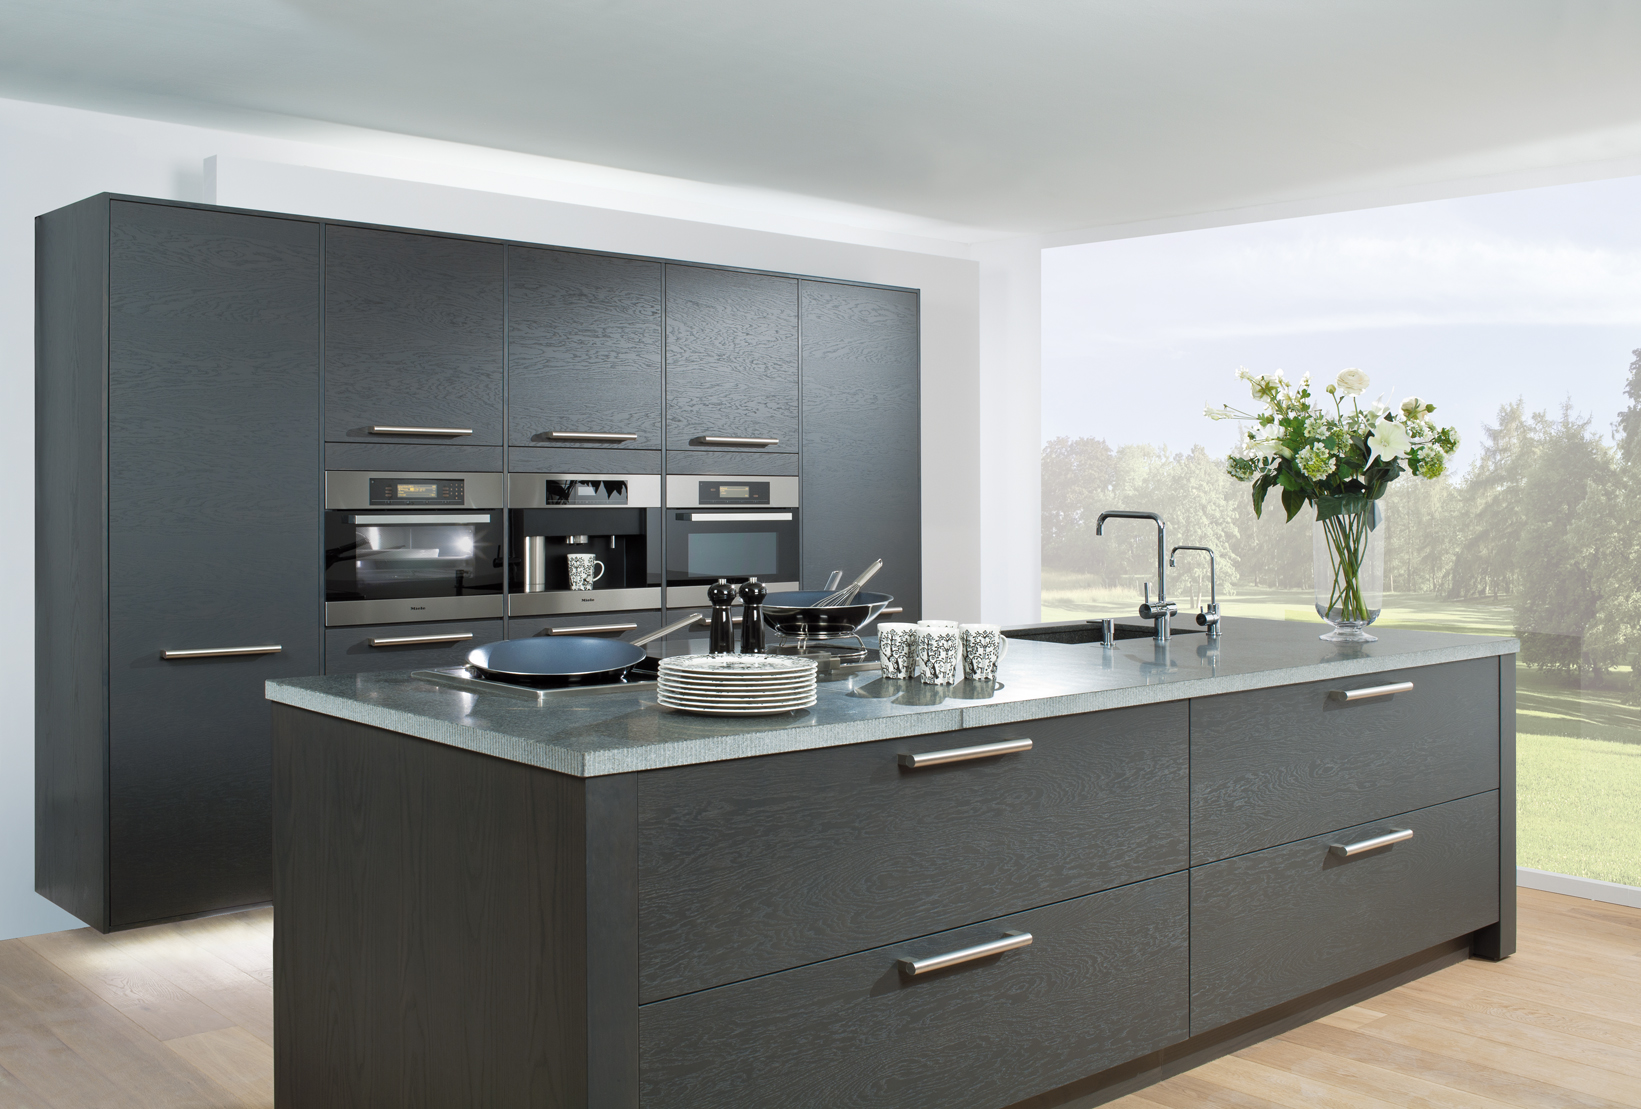 kitchen-island-and-rear-wall-units-are-shown-in-basallt-grey-oak-veneer-finsh